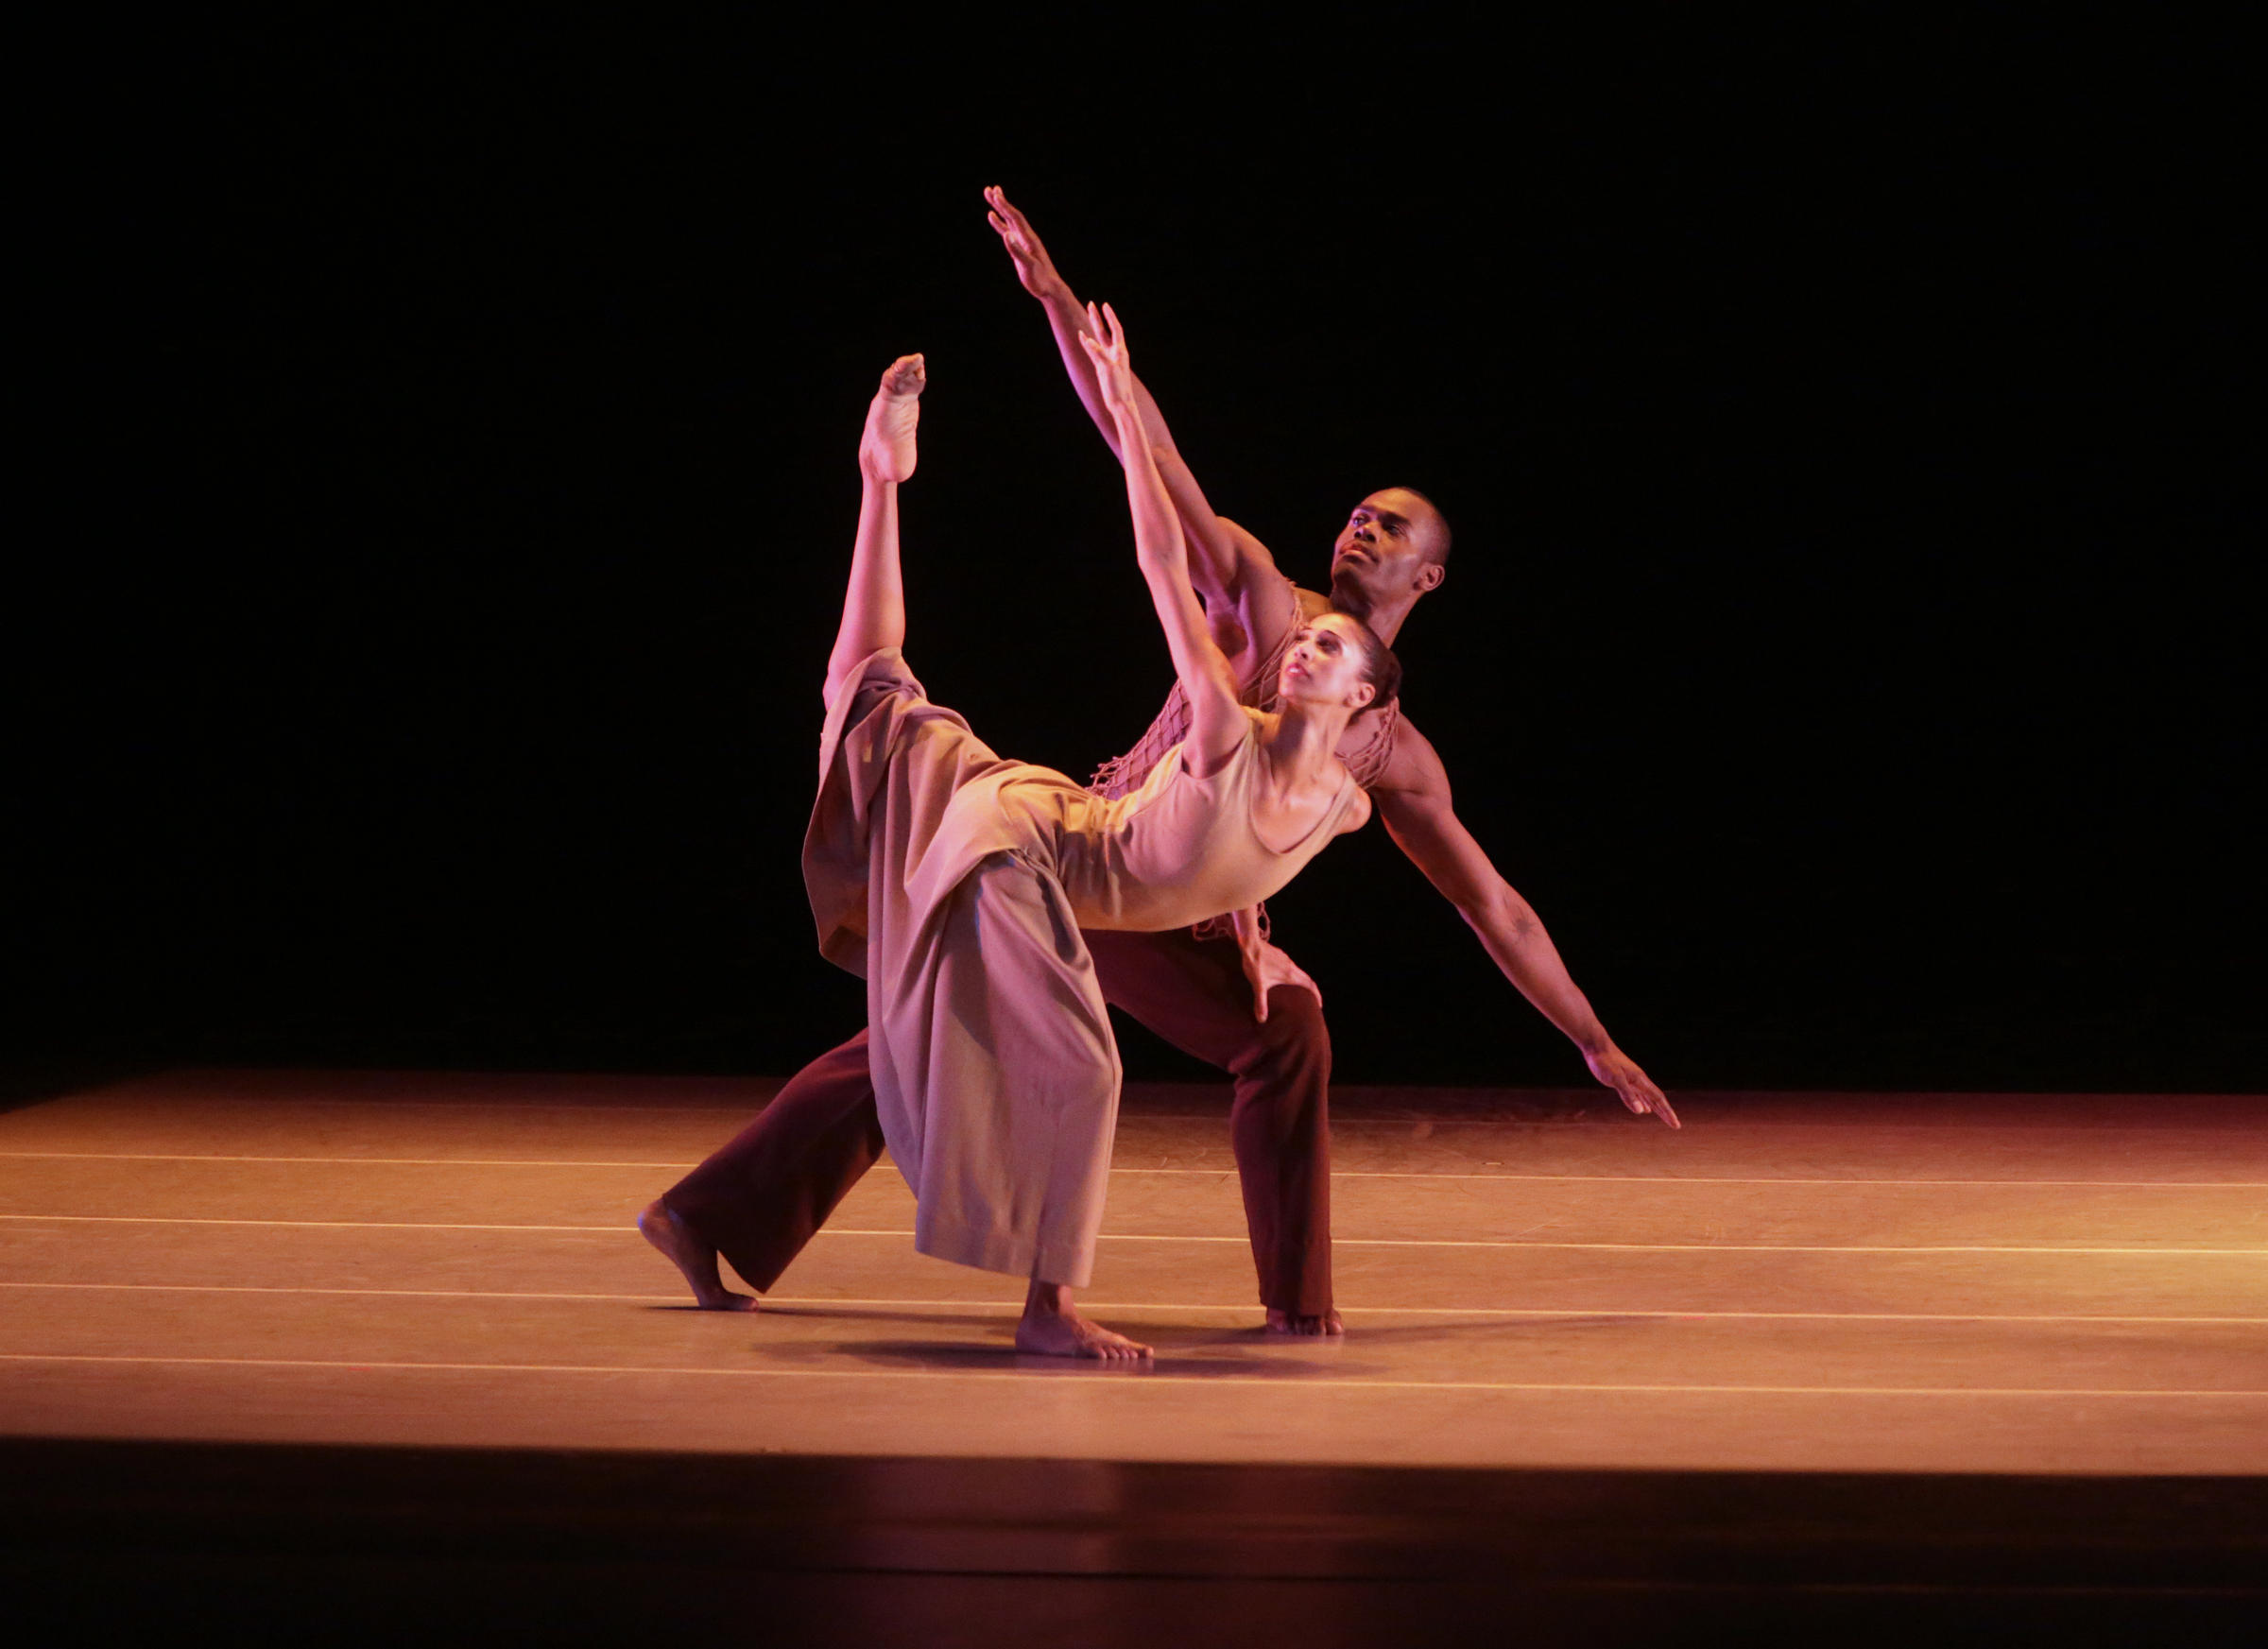 a review of modern dance since 1890 Modern dance history i'll use the expression modern dance history to talk about figures, choreographic productions and related facts occurred in western culture between the end of the xix century and the 1950s.